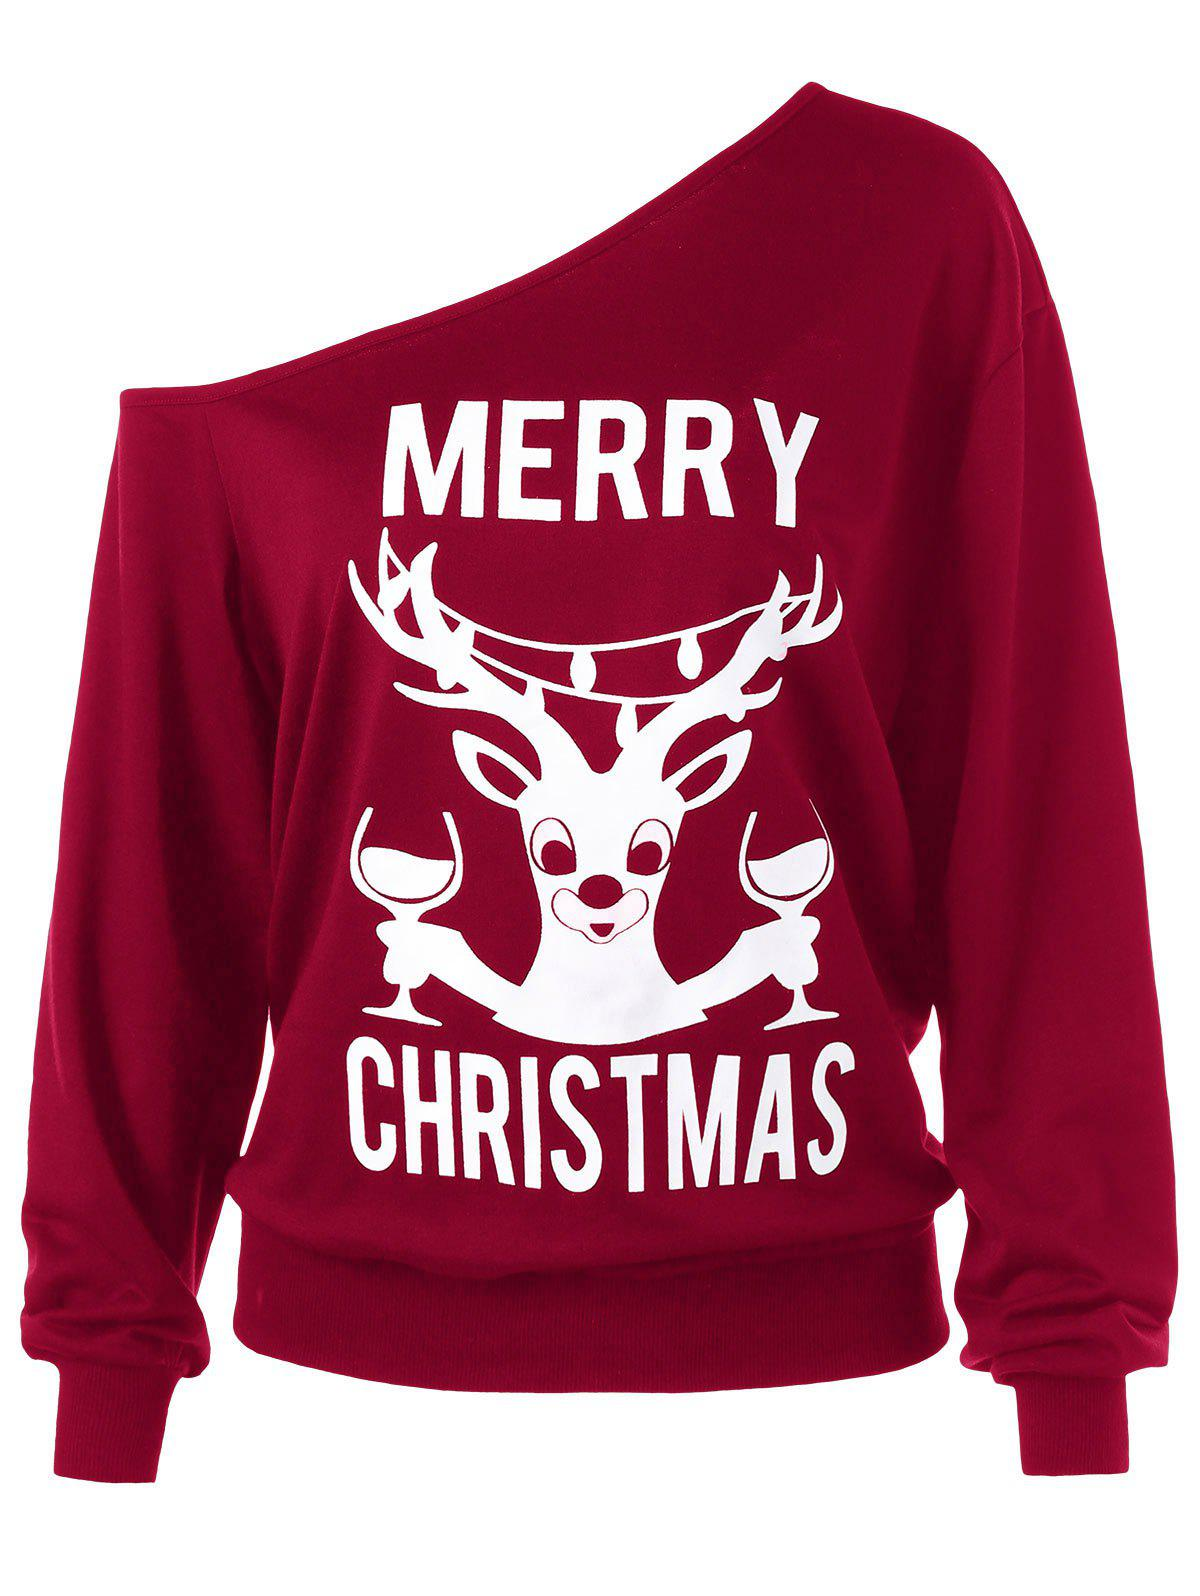 Plus Size Merry Christmas Skew Collar Sweatshirt plus size christmas reindeer skew collar sweatshirt